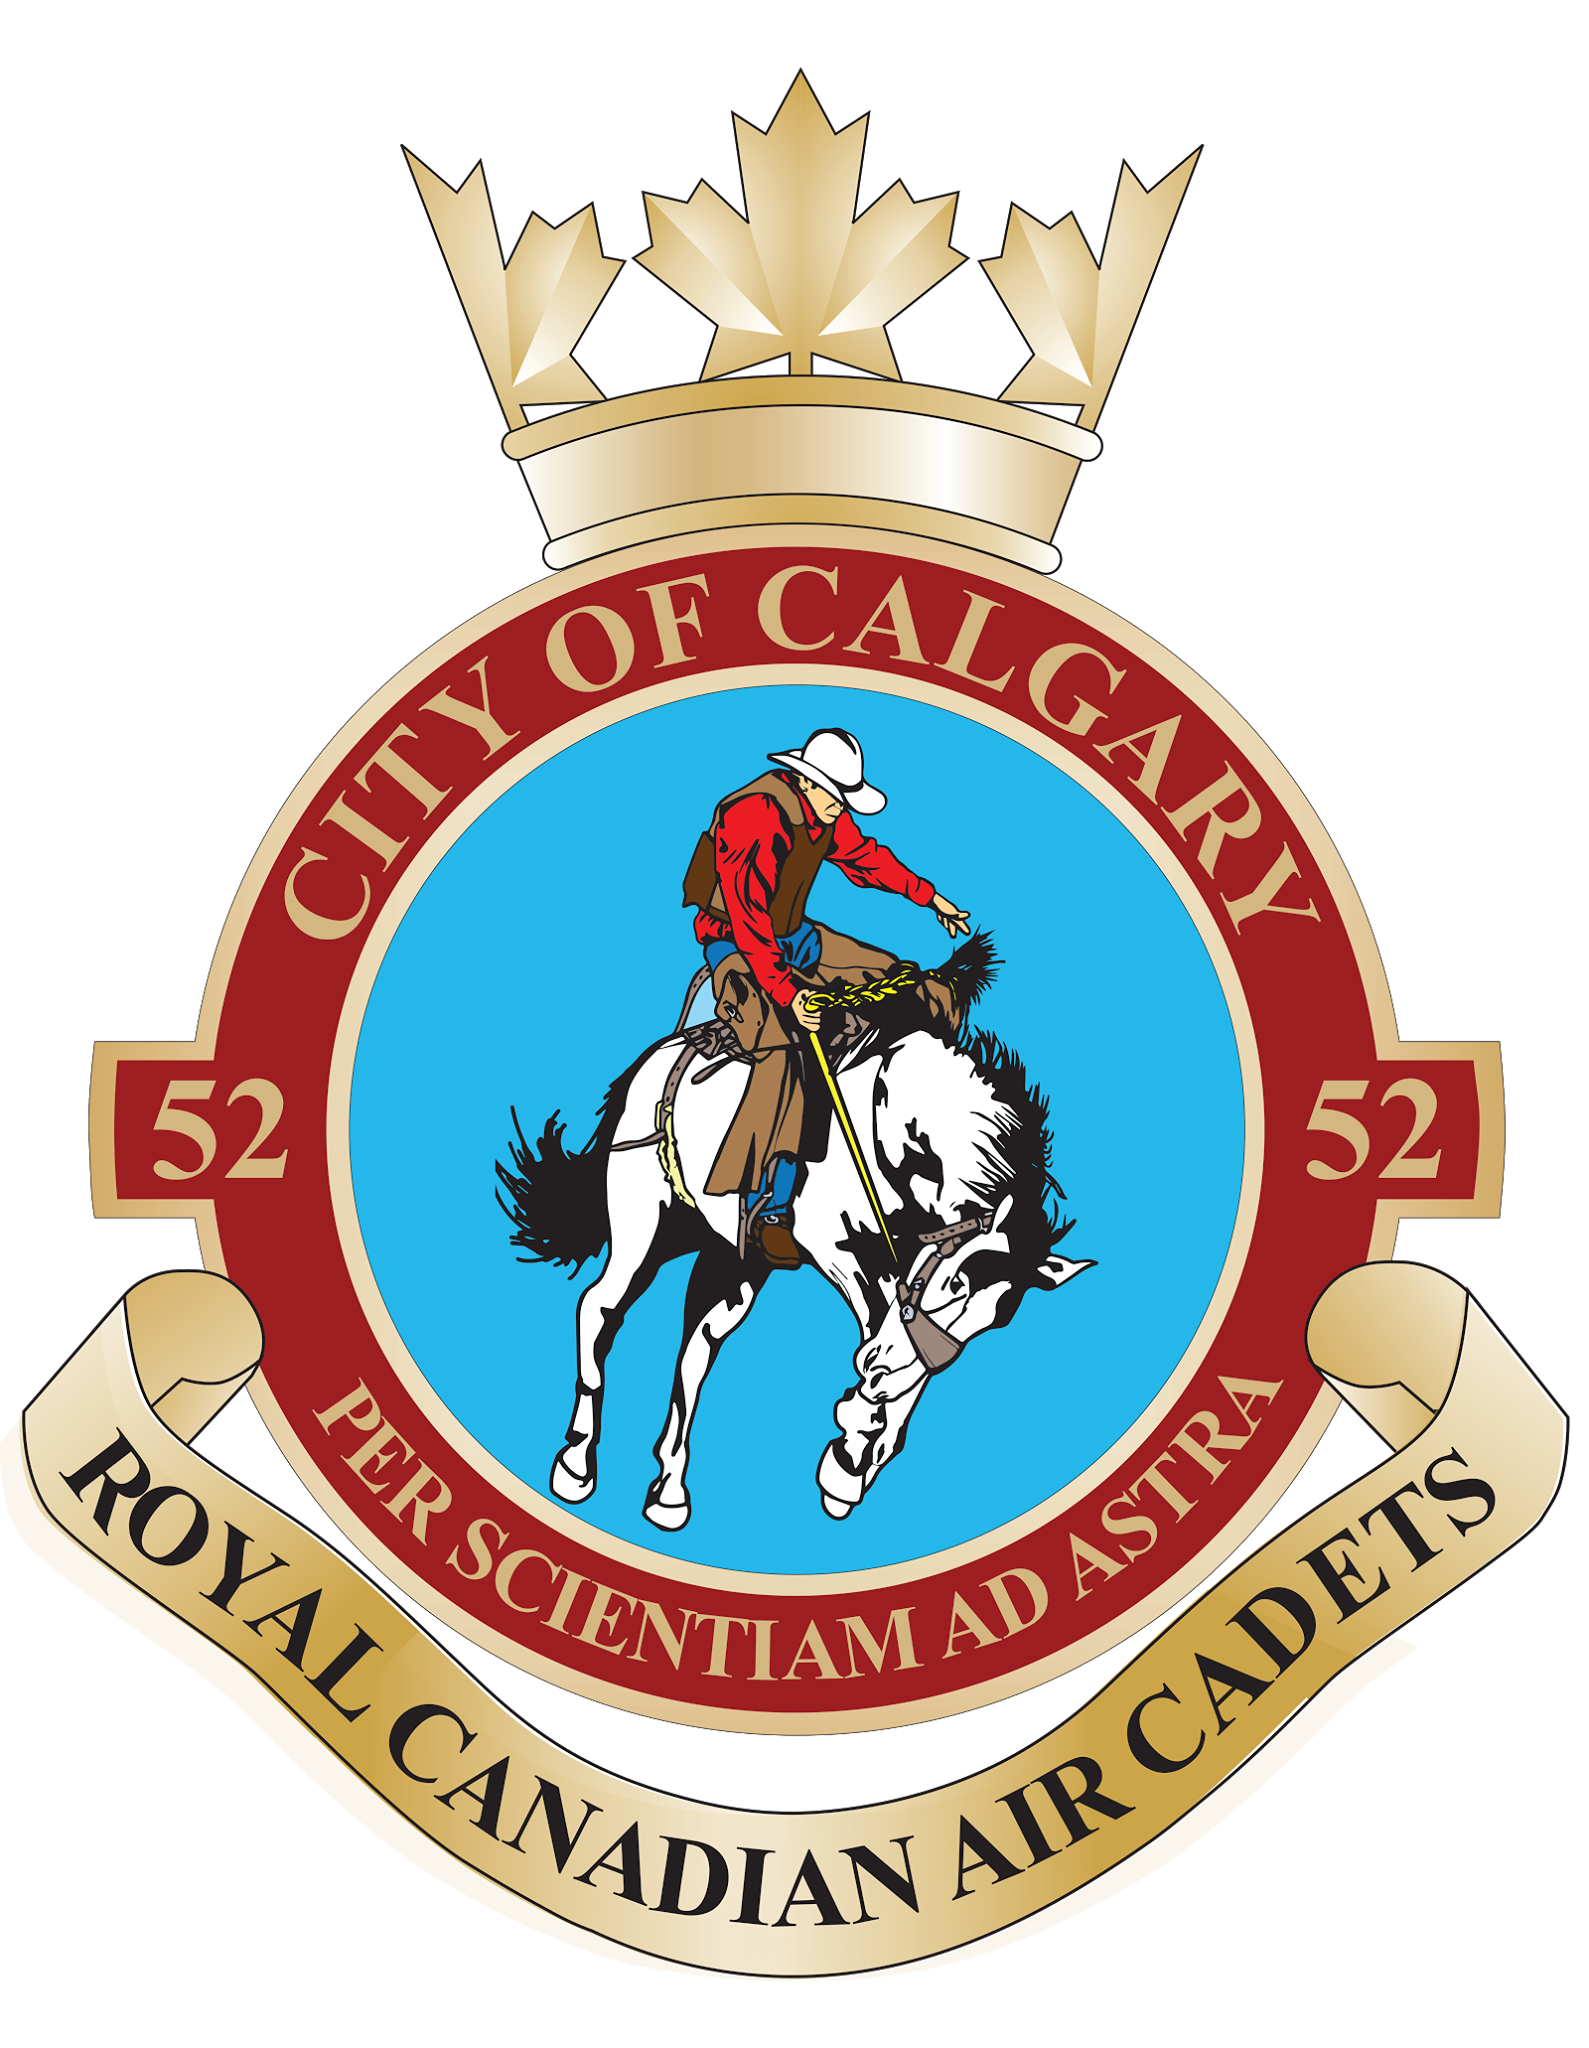 Image: 52 City of Calgary Air Cadet Squadron / Facebook